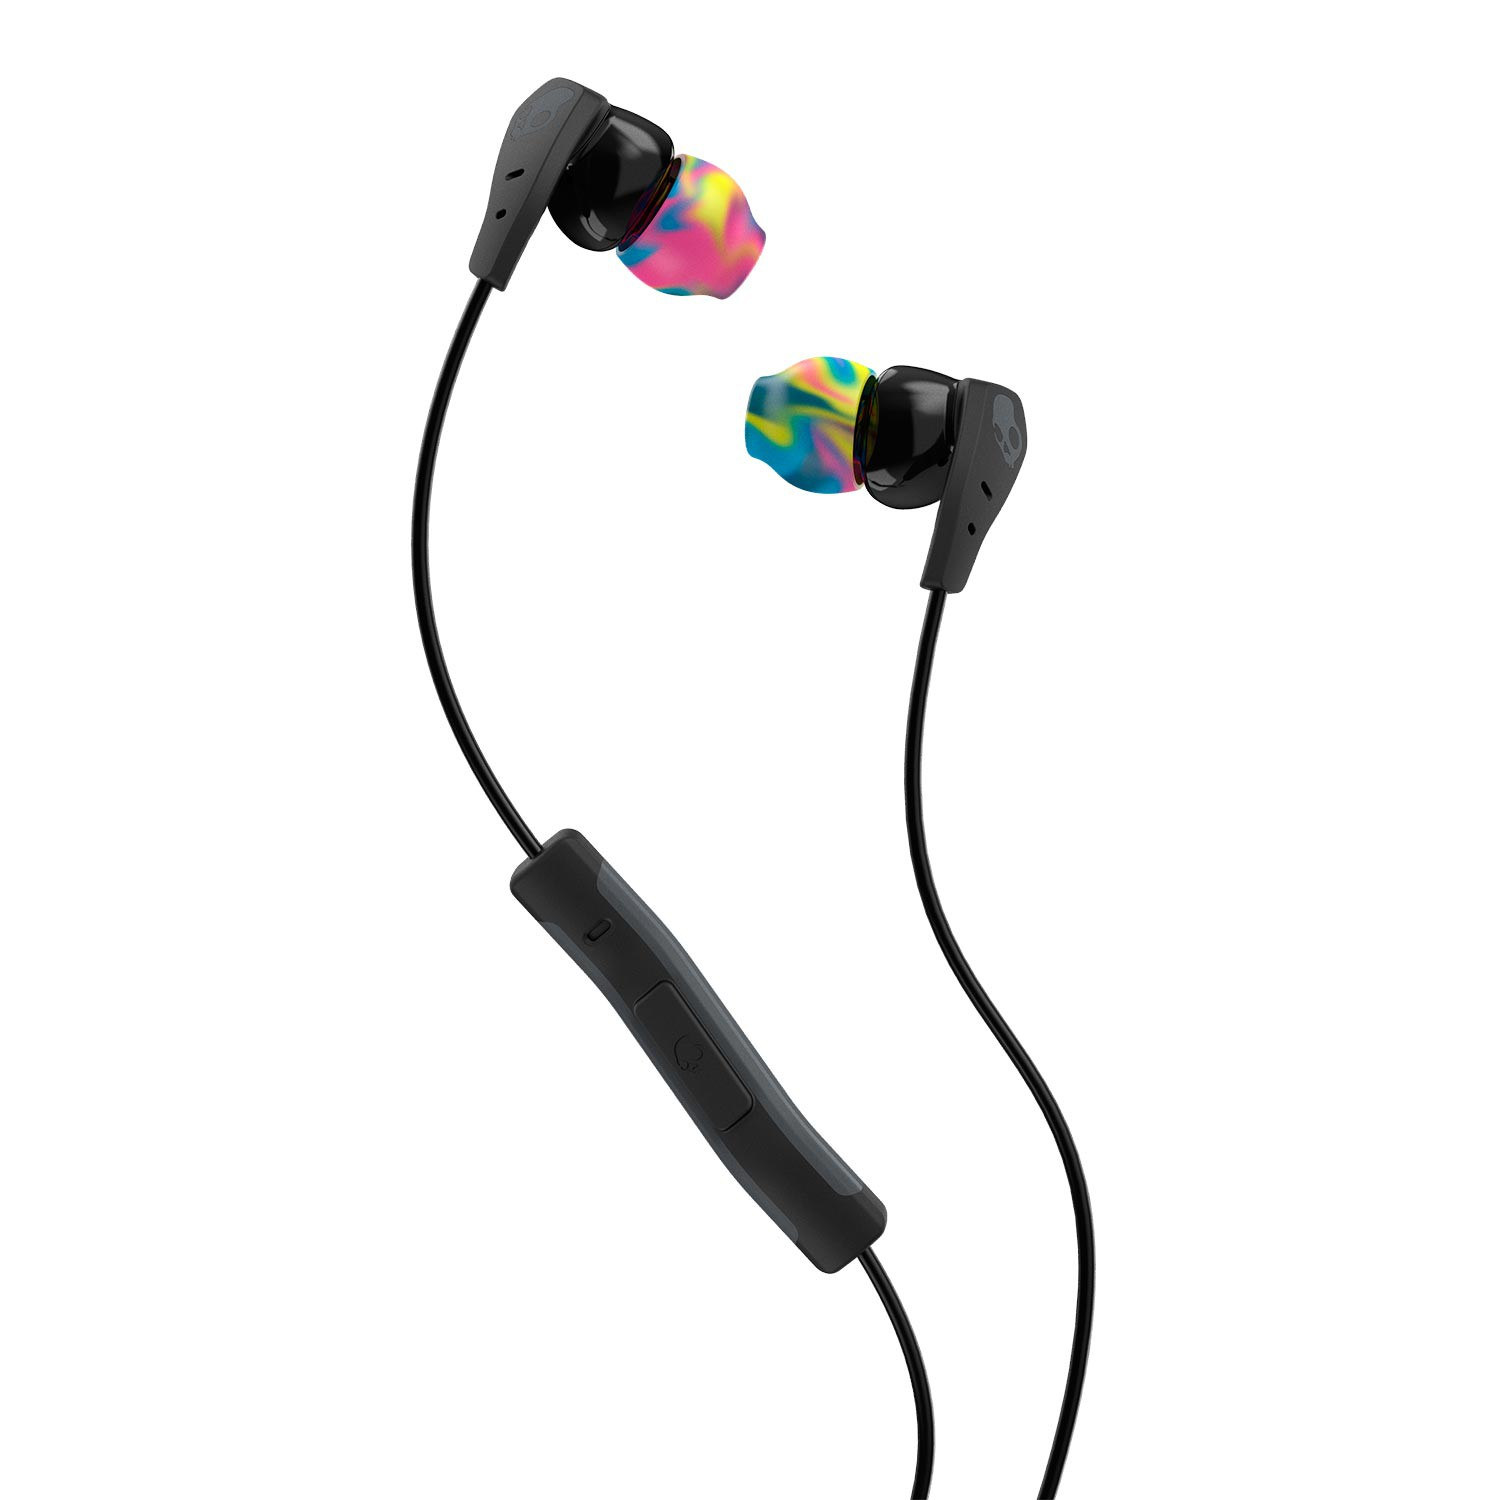 Sluchátka Skullcandy Method black/swirl